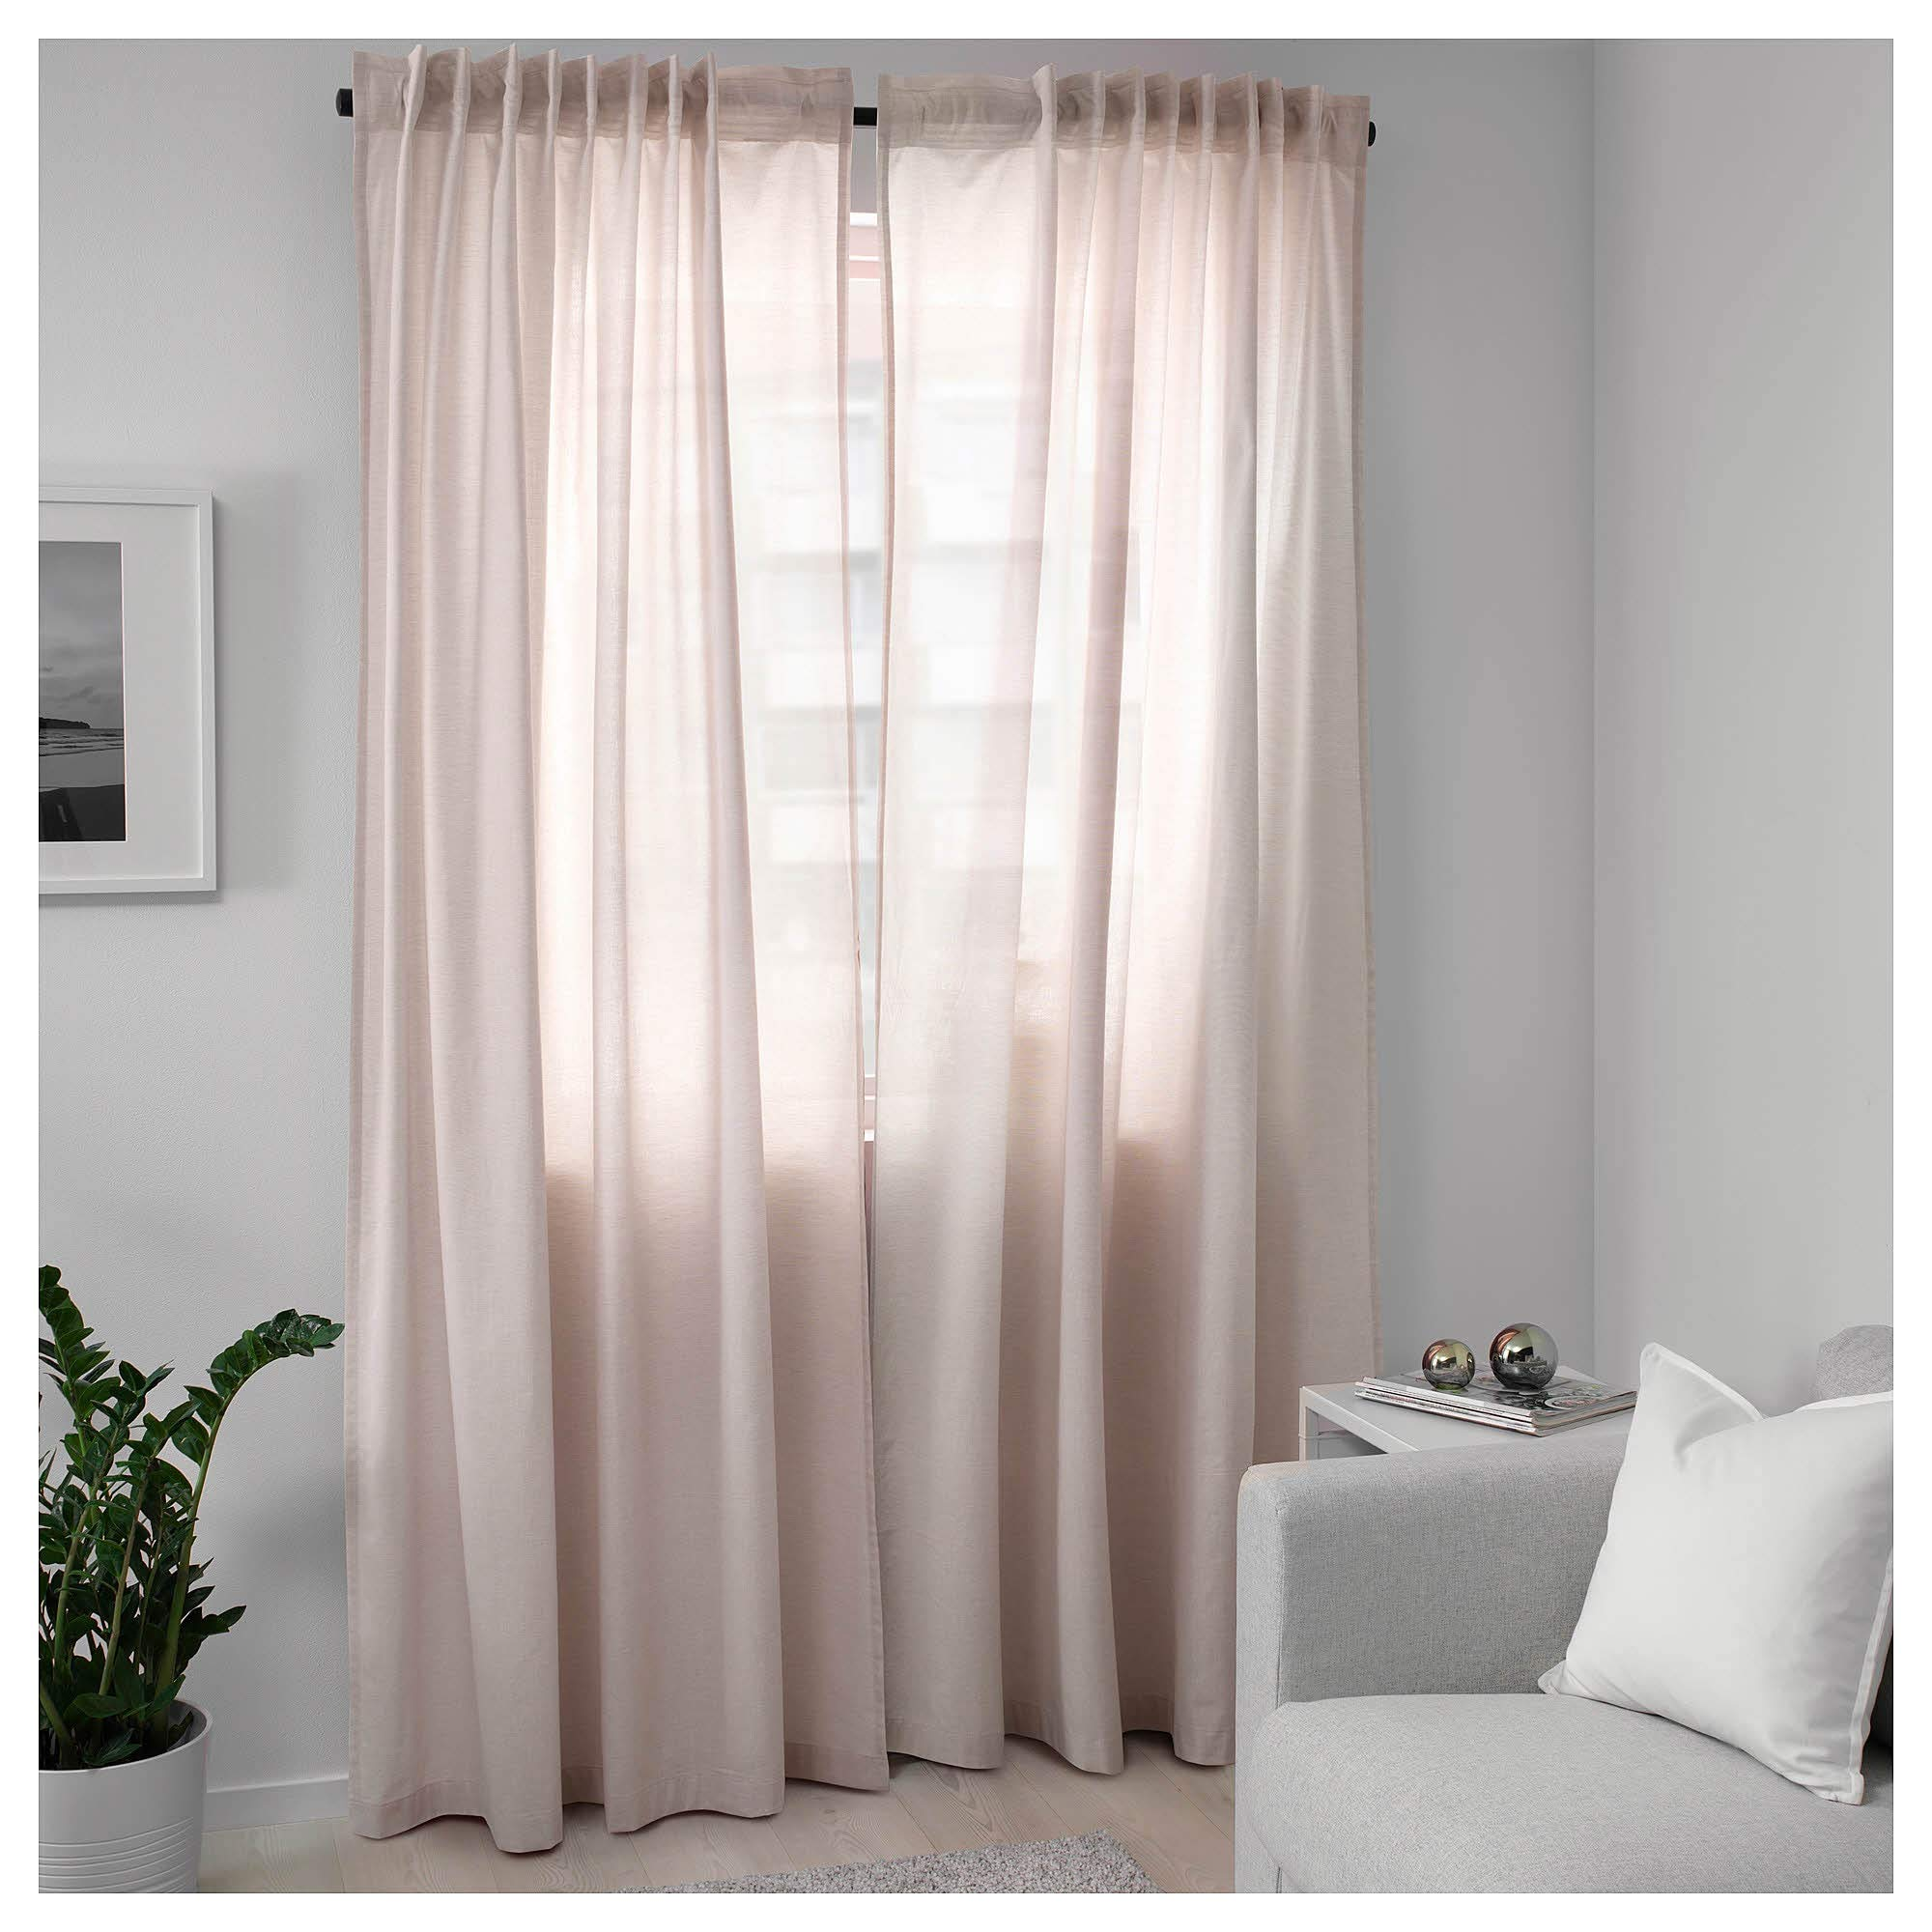 IKEA ASIA HANNALILL - Cortinas (1 par), Color Rosa: Amazon.es: Hogar